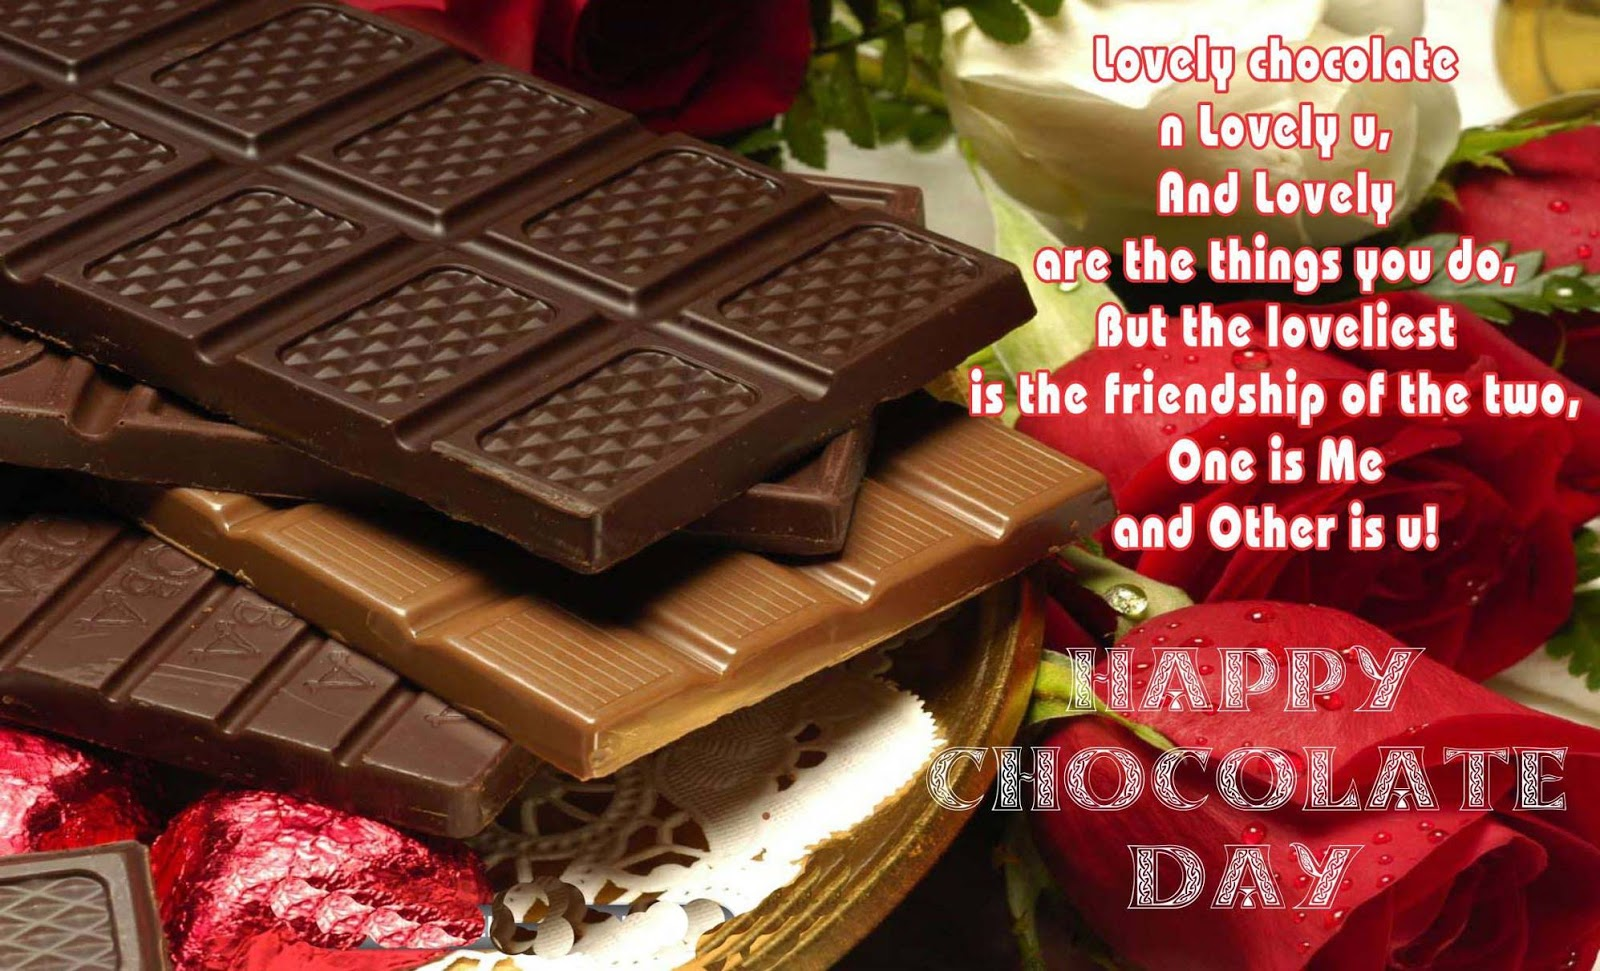 Chocolate Day 2018 Image For Fiance & Friends